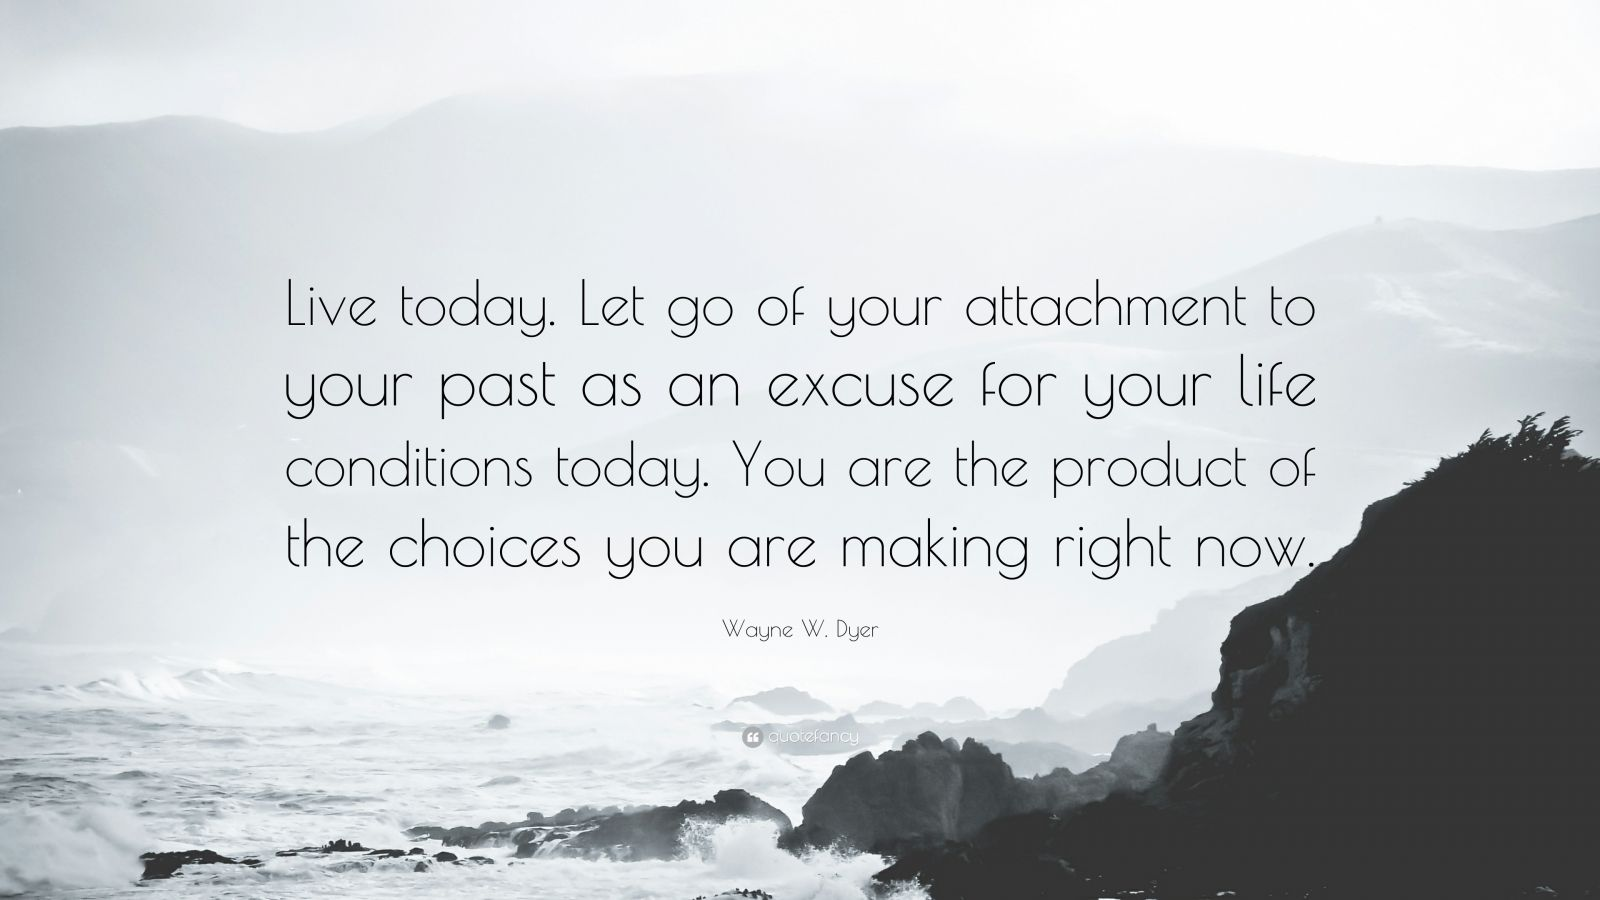 """Wayne W. Dyer Quote: """"Live today. Let go of your attachment to your past as an excuse for your life conditions today. You are the product of the choices you are making right now."""""""